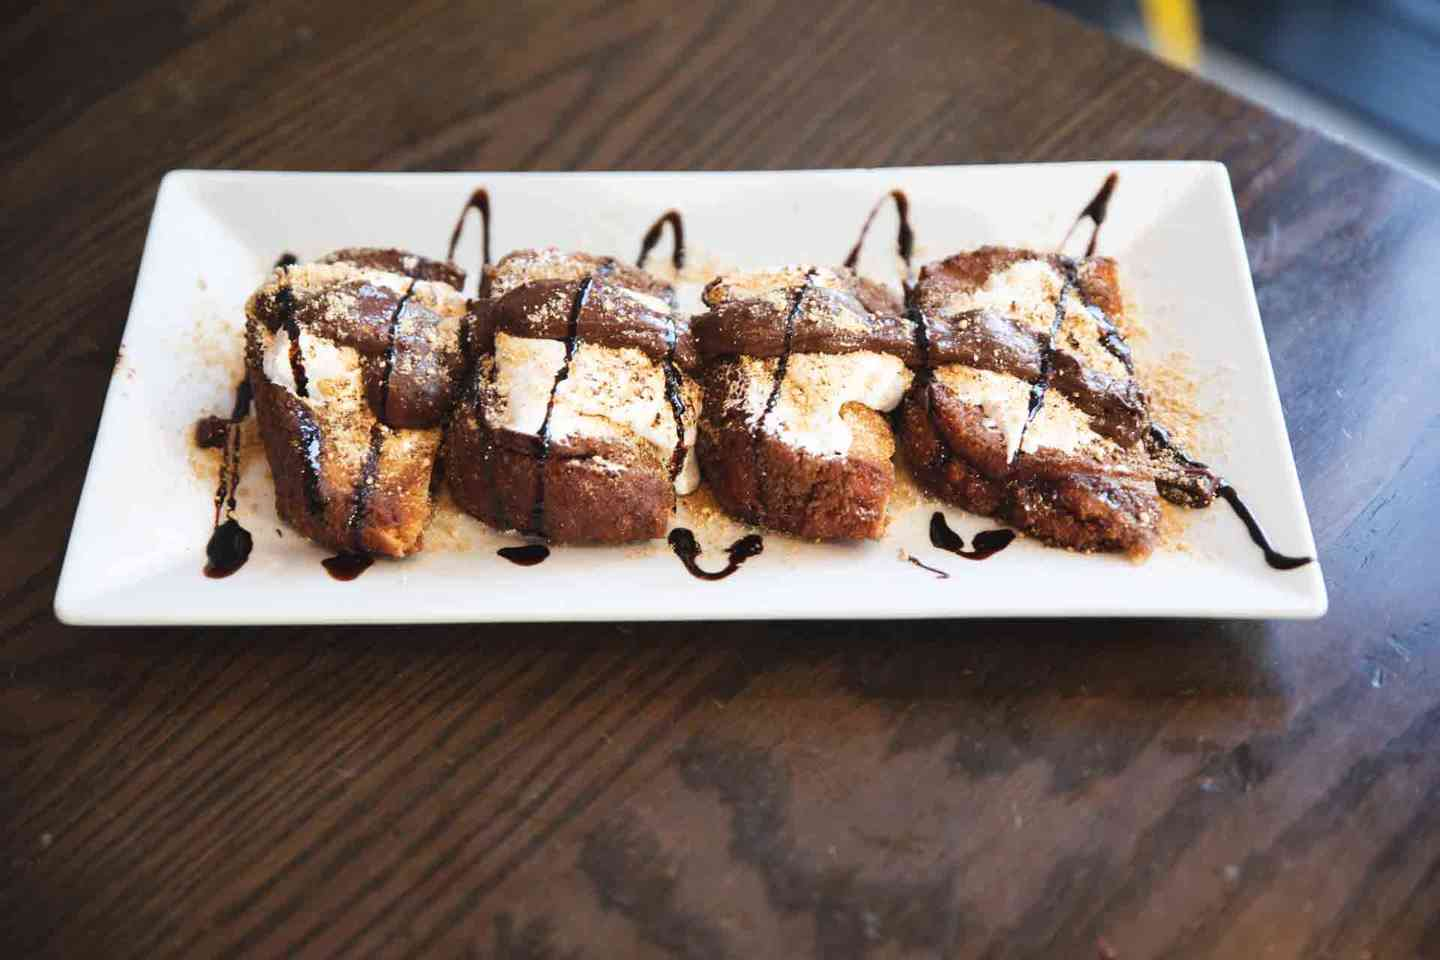 Toasted S'mores with Marshmallow, Chocolate & Graham Cracker Crumbs French Toast